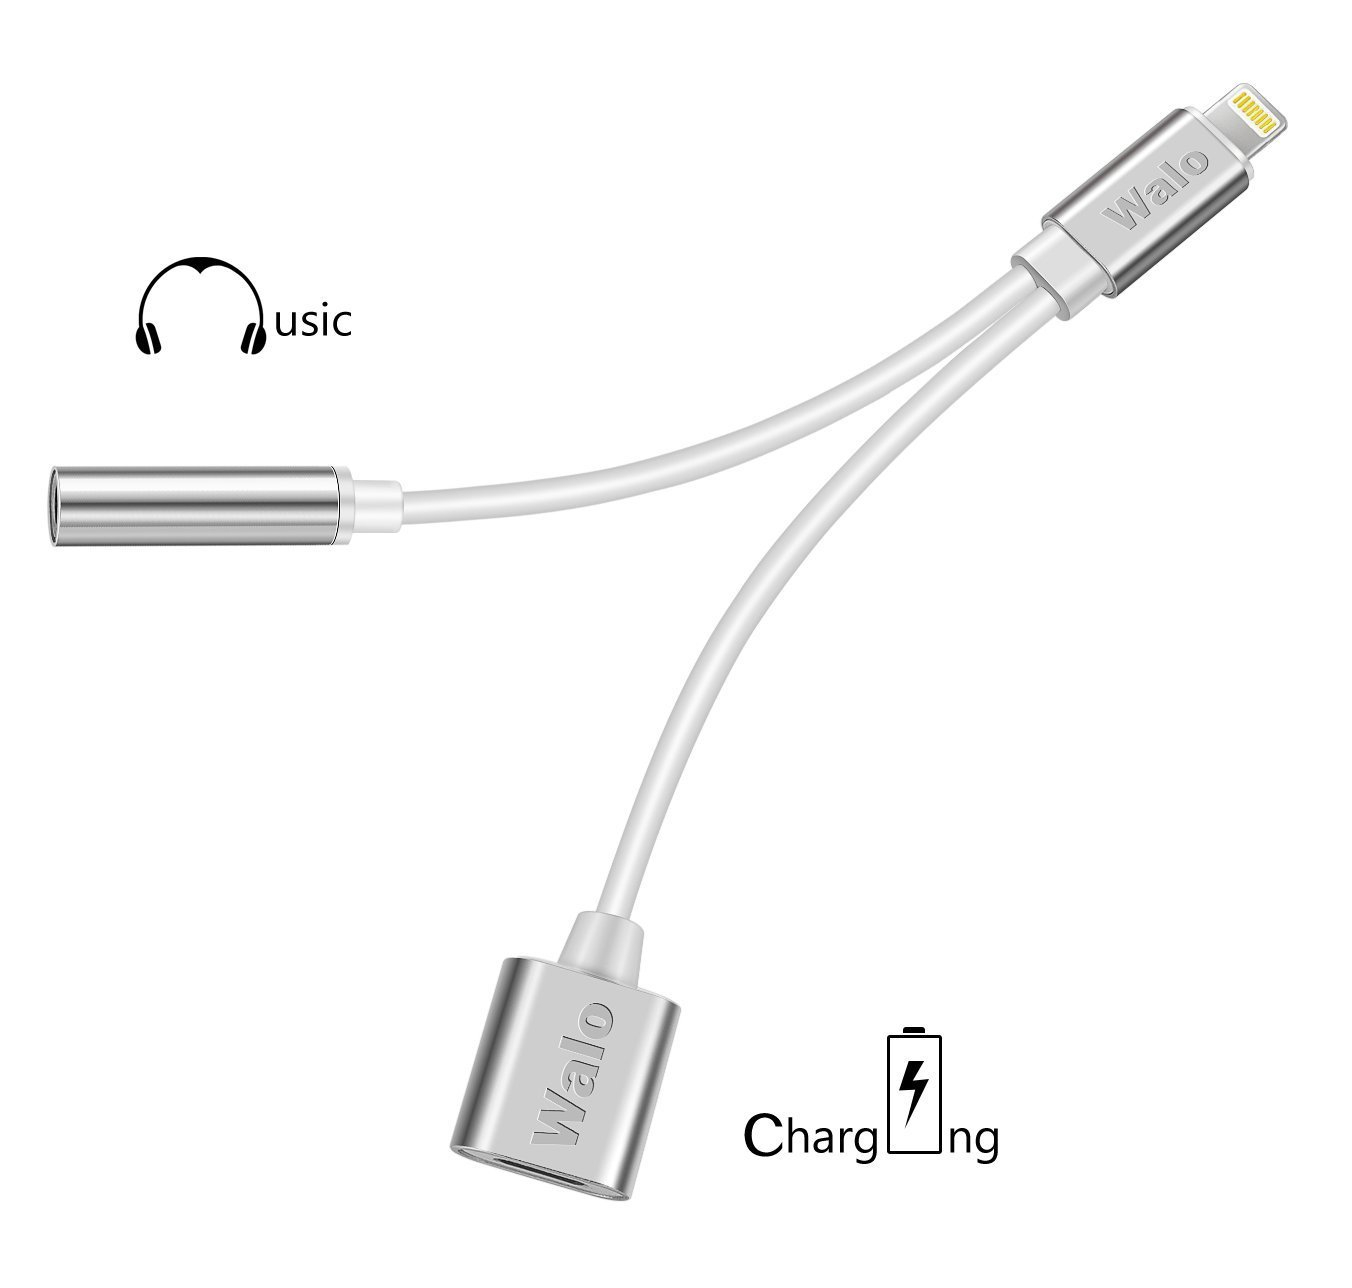 Iphone 7 Series Lightning Audio + Charging Adaptor $10 / Boing Boing - Iphone Lightning Cable Usb Wiring Diagram